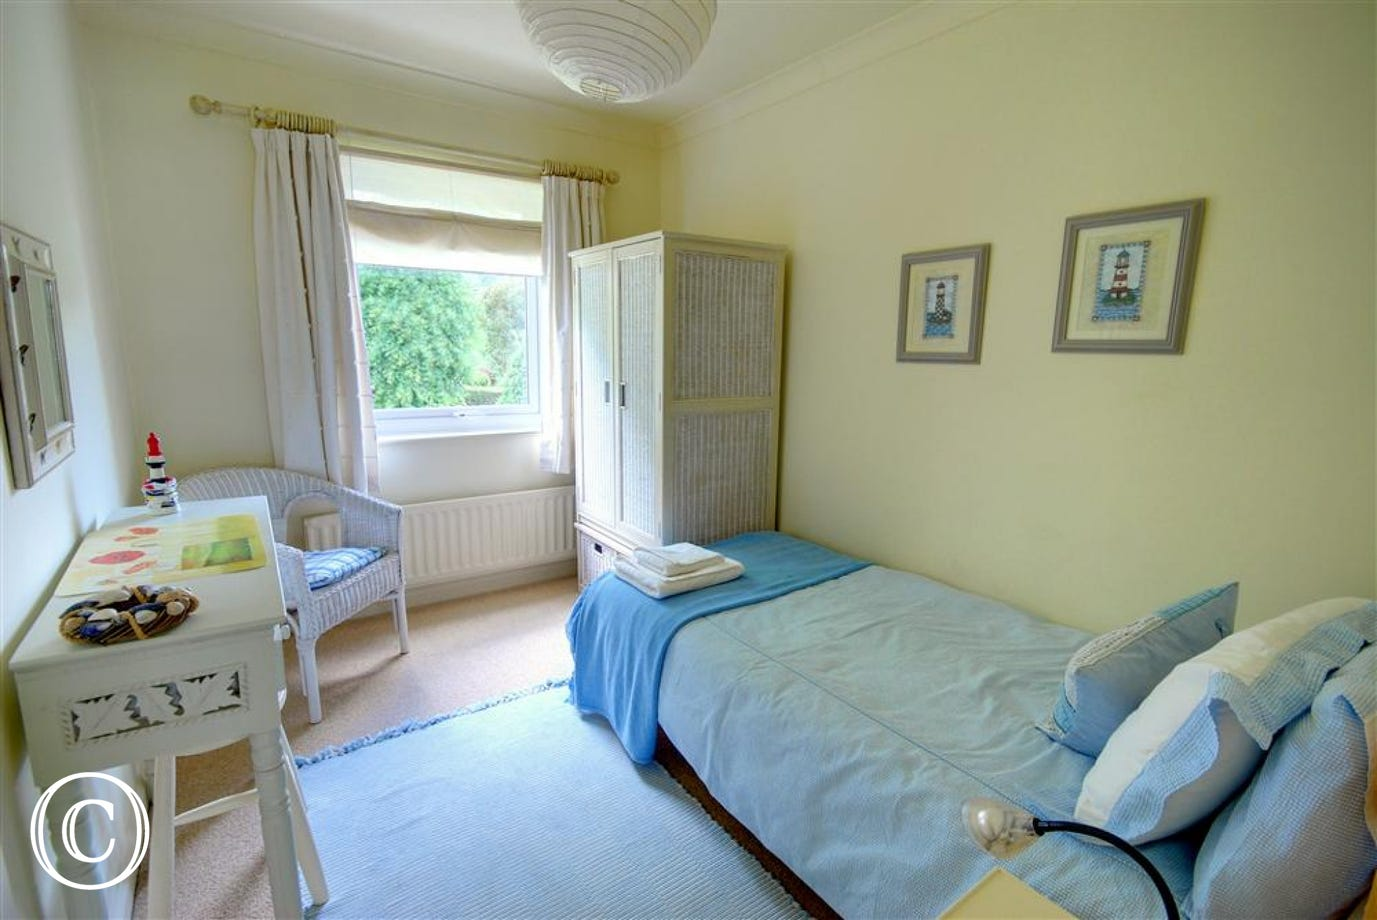 Attractive single bedroom with a nautical feel, ideal for the children